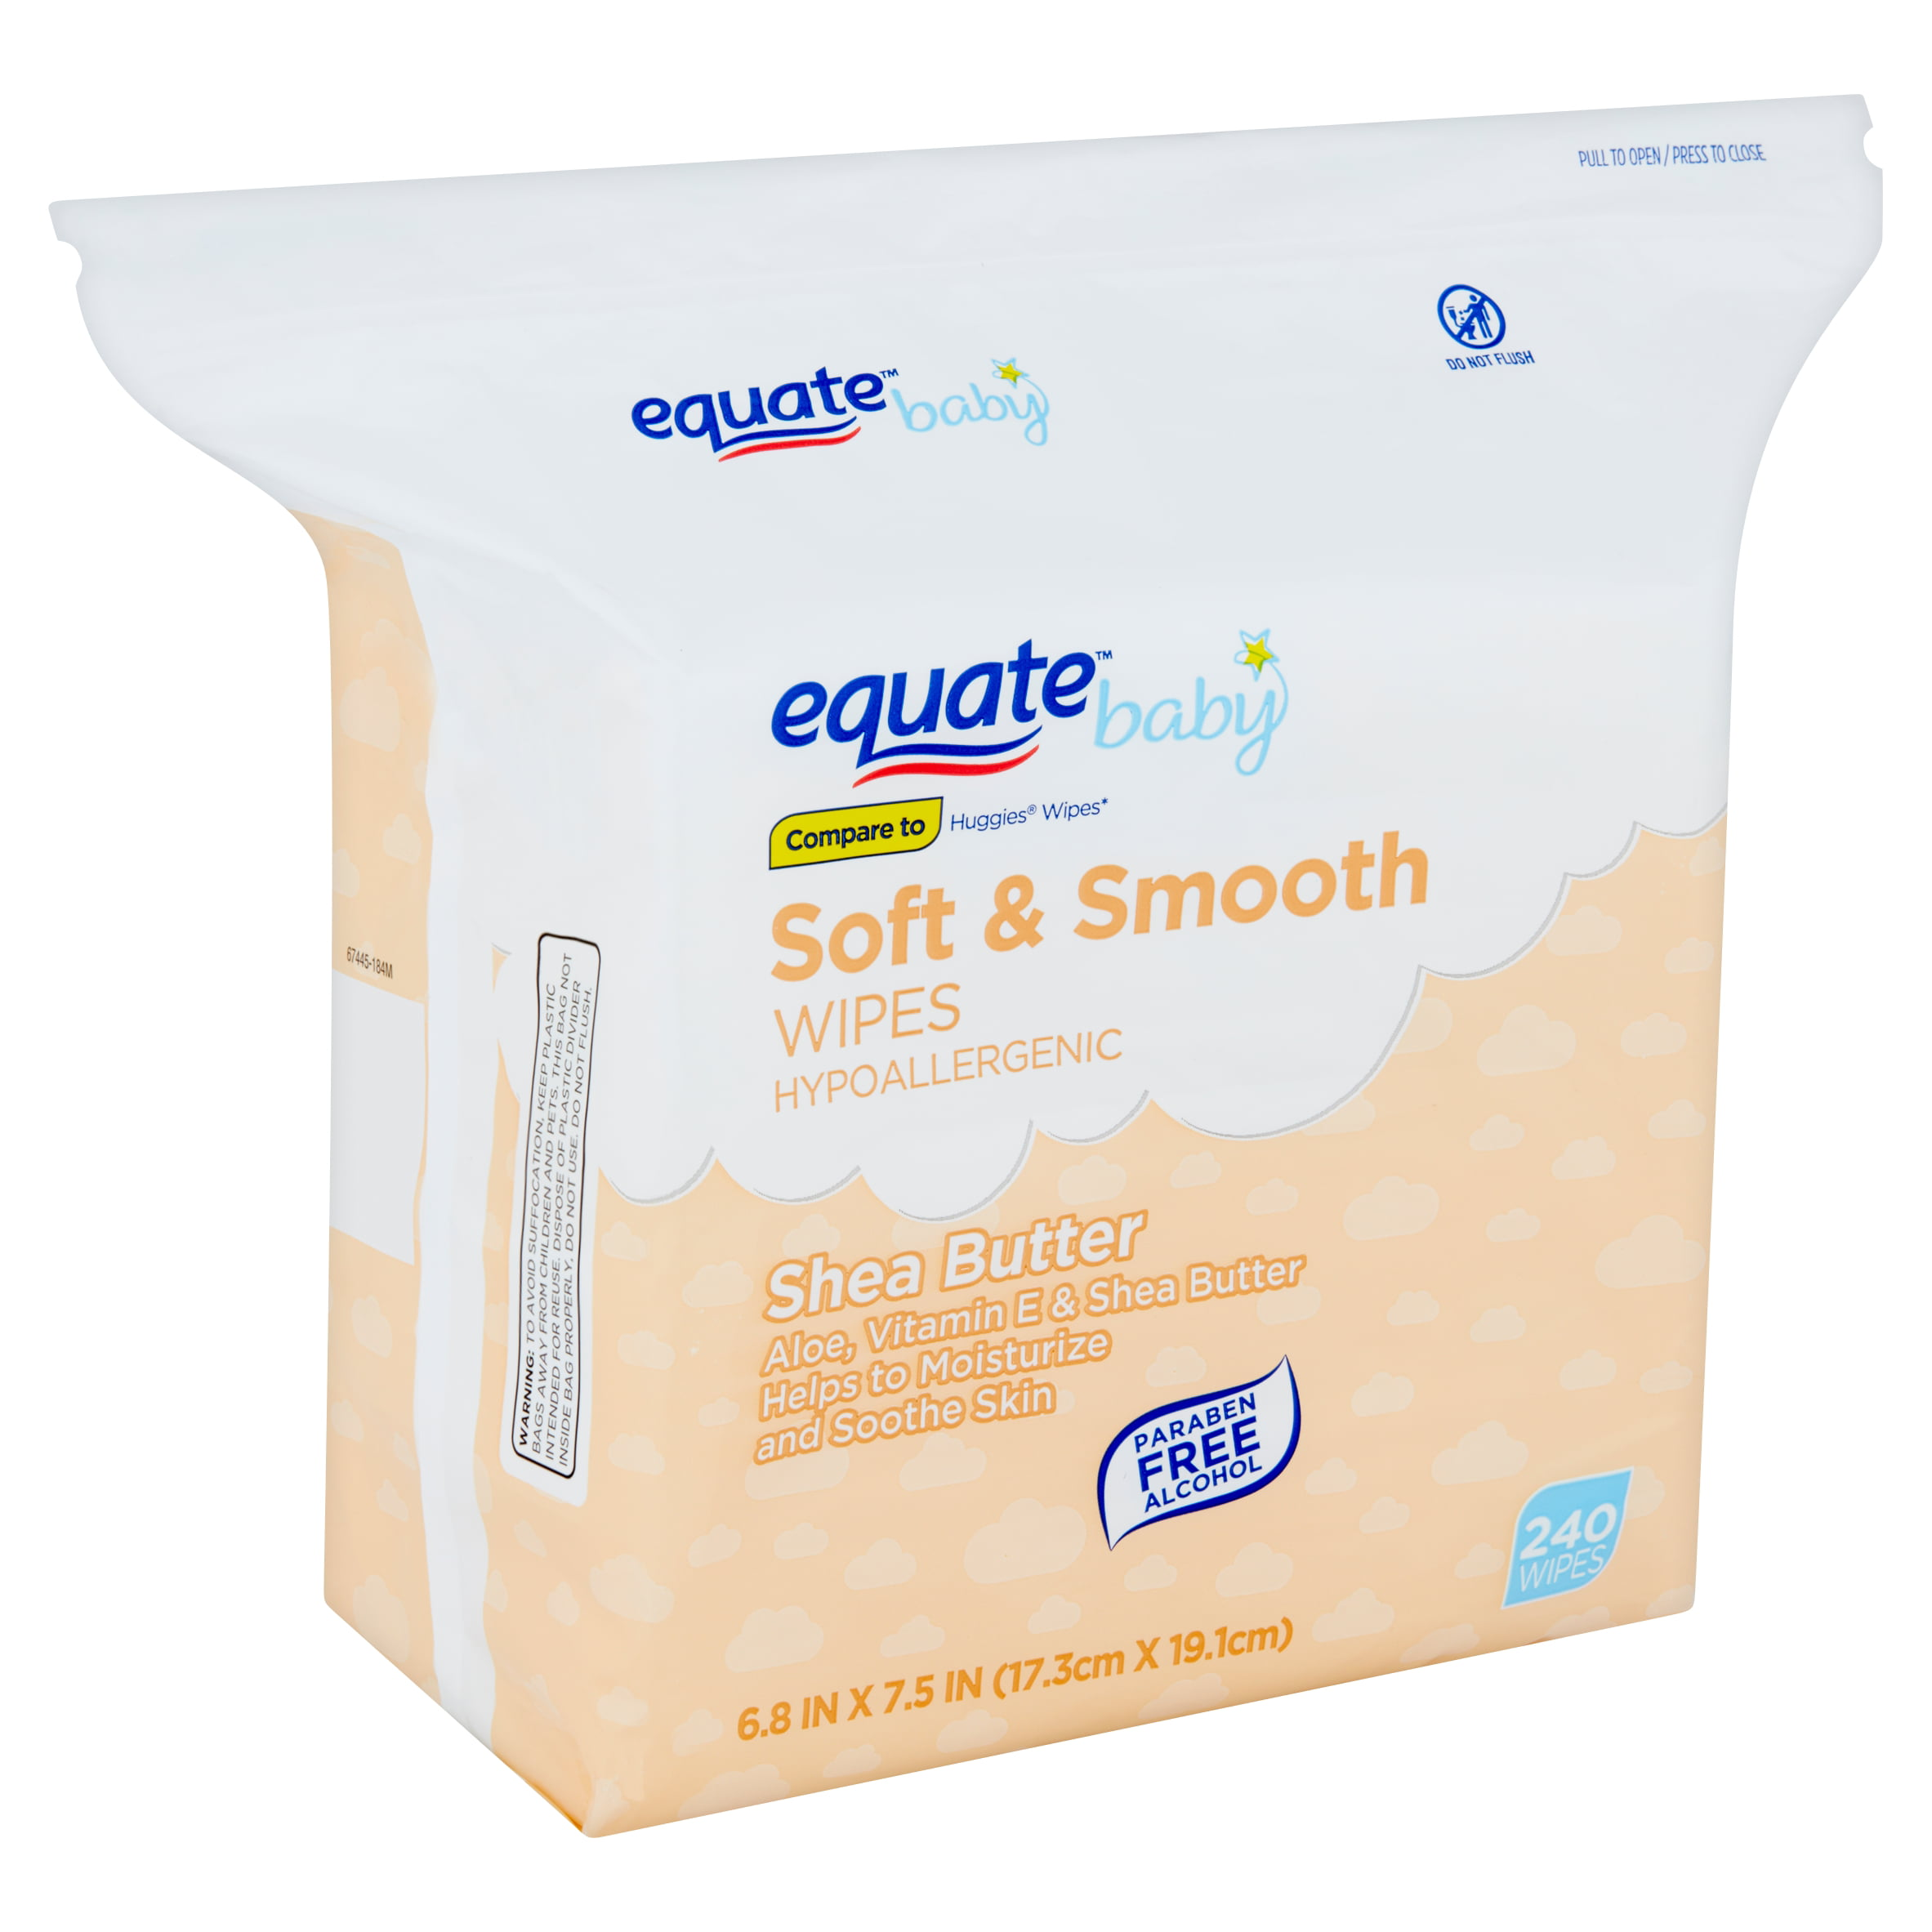 Equate Baby Soft & Smooth Shea Butter Wipes, 240 count